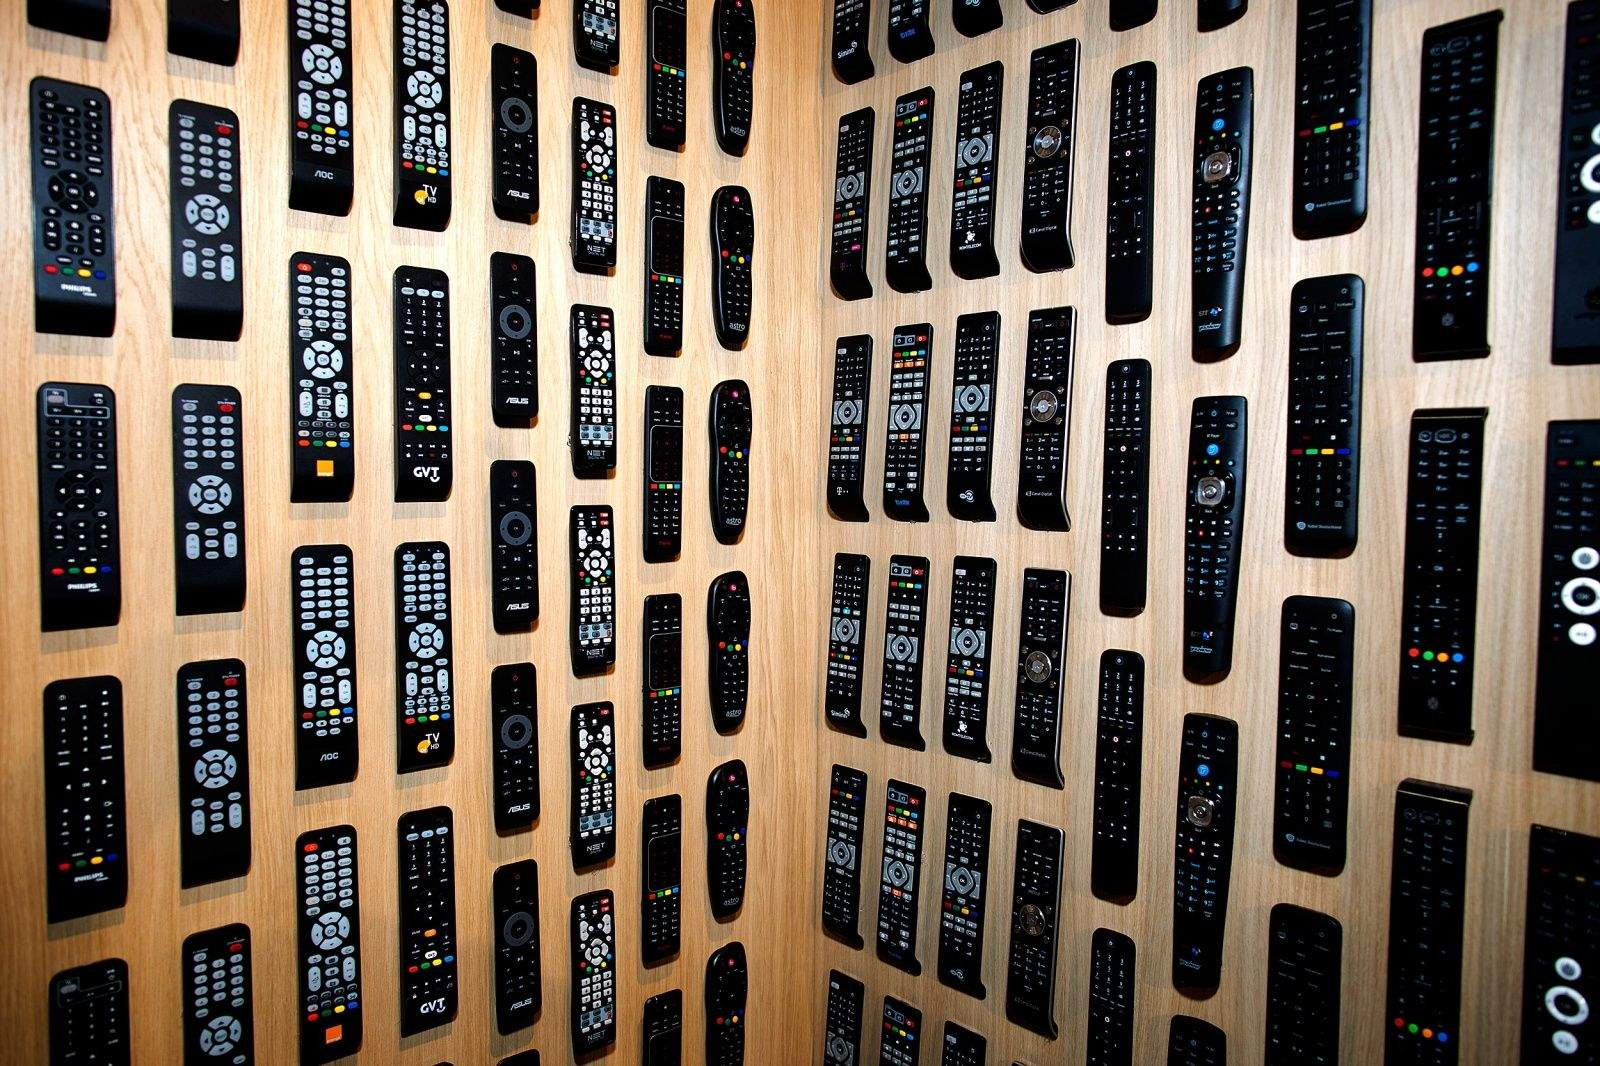 Wall of Philips remotes. Photo: Jim Merithew/Cult of Mac